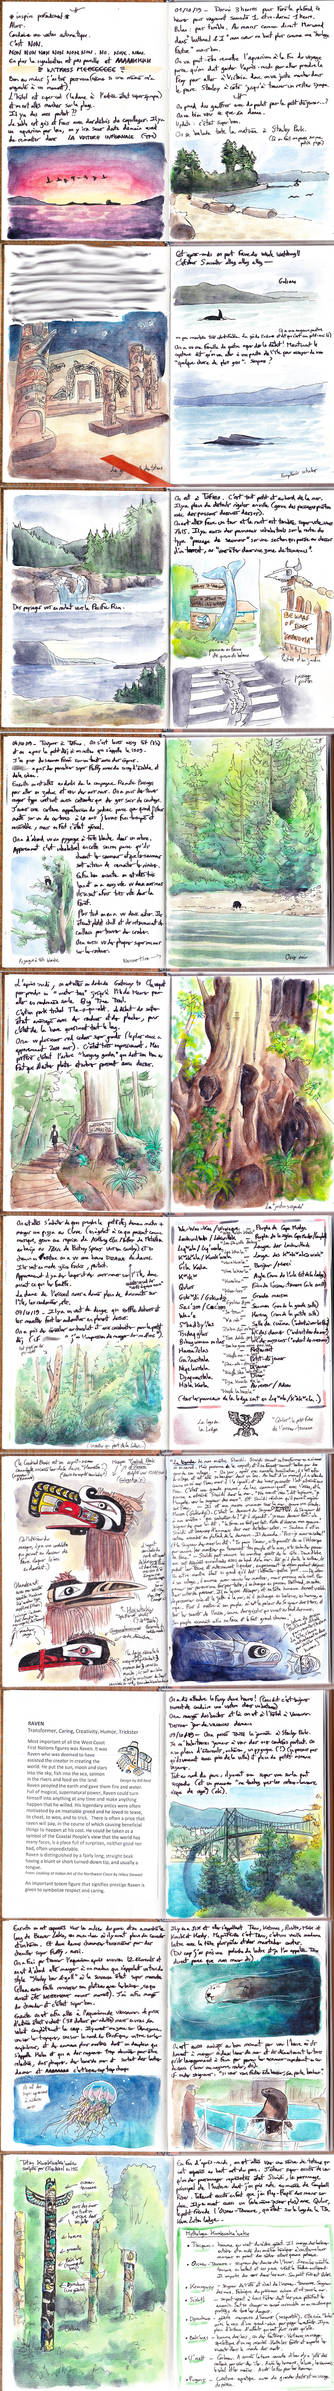 Pages from a roadtrip journal on Vancouver Island